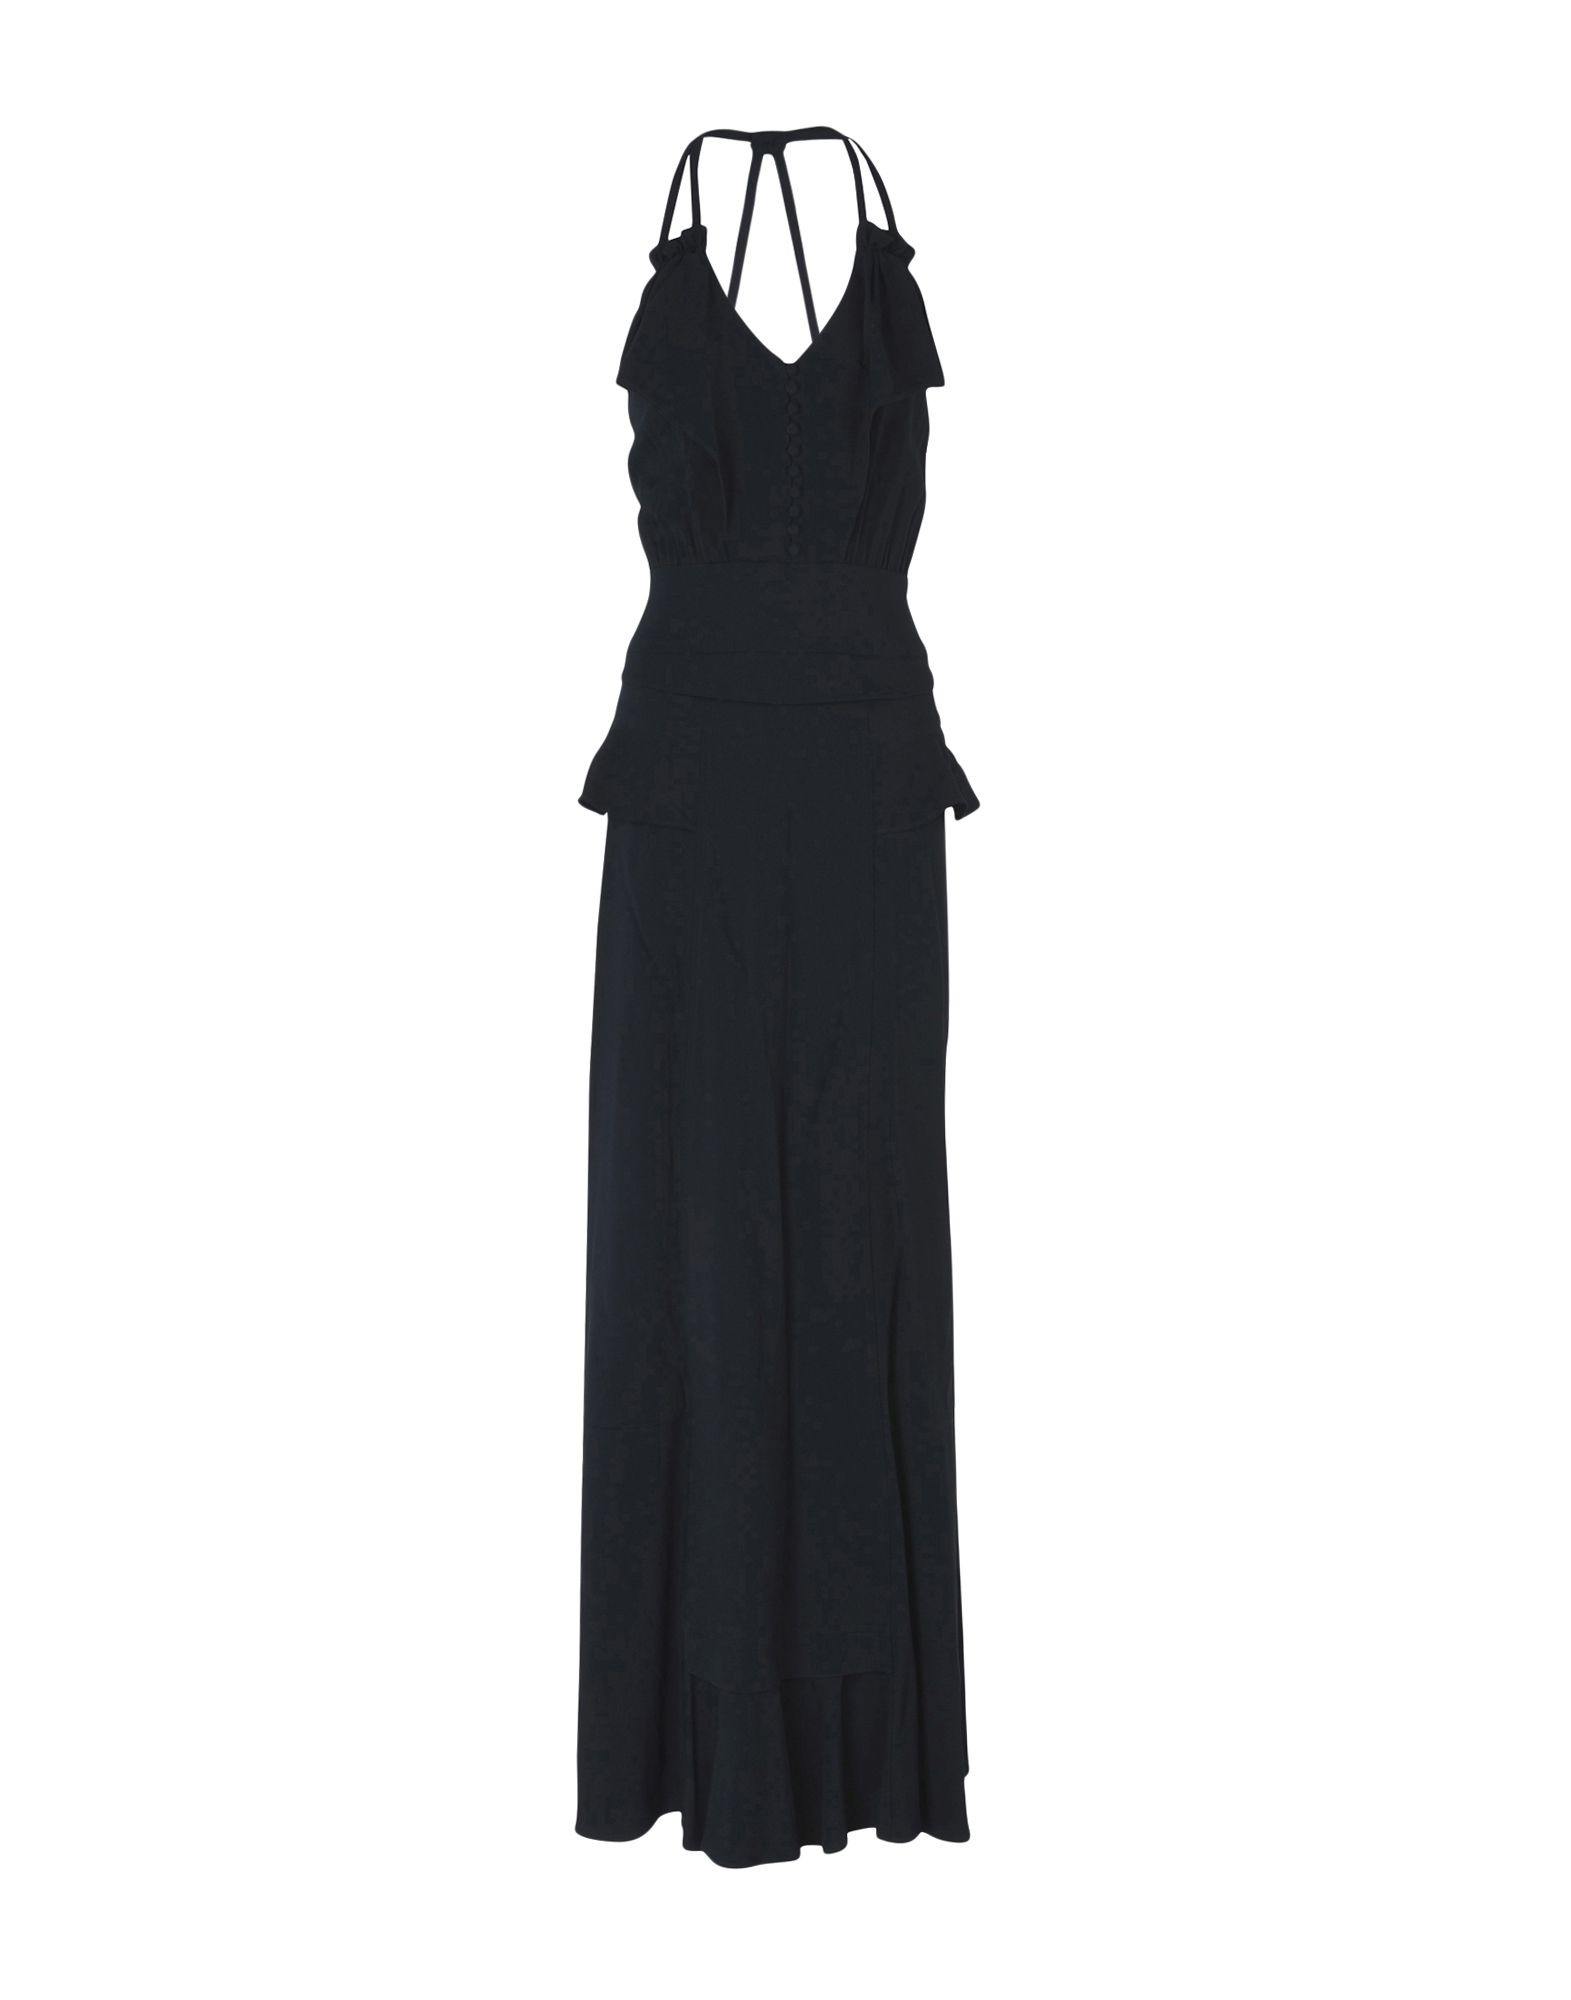 MAYLE Evening Dress in Black